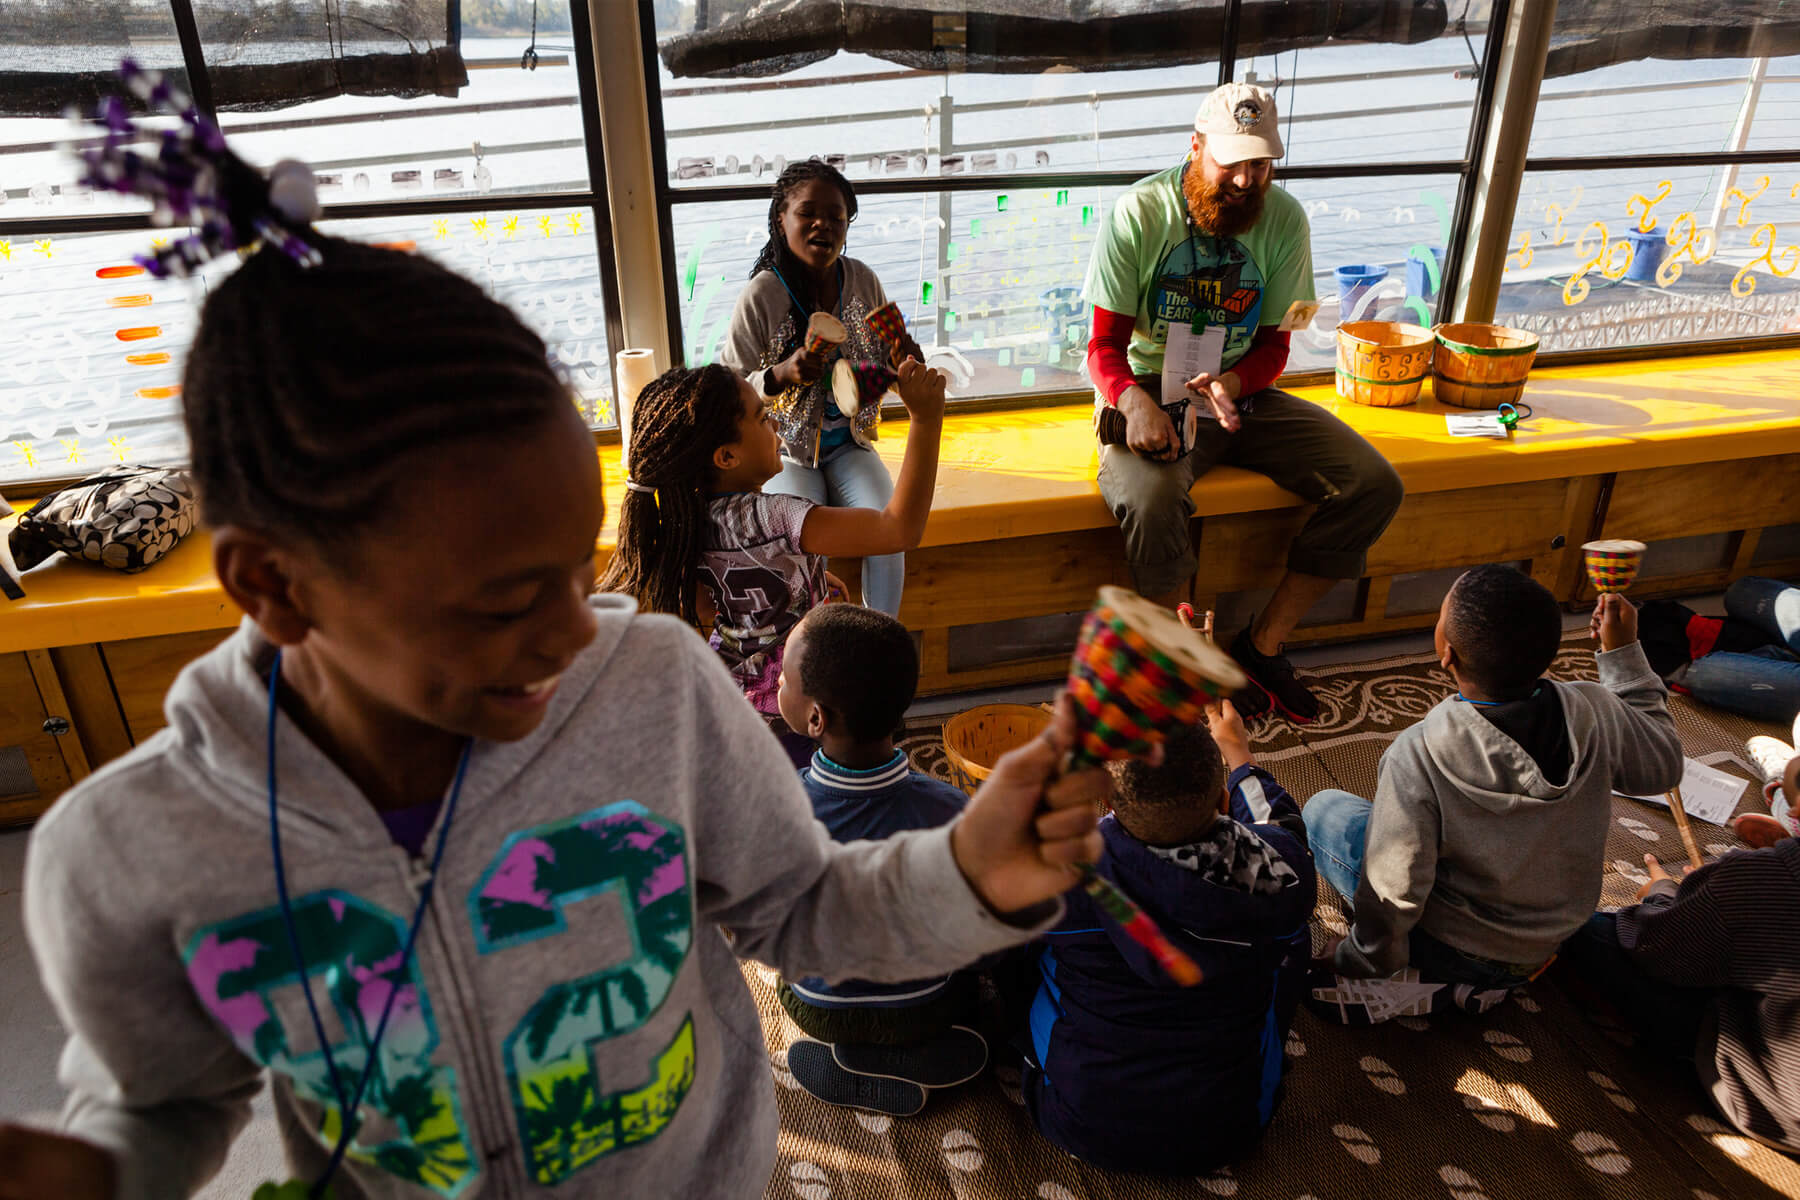 Fourth-grade students learn about art on the Elizabeth River Project's Learning Barge in Norfolk, Virginia.